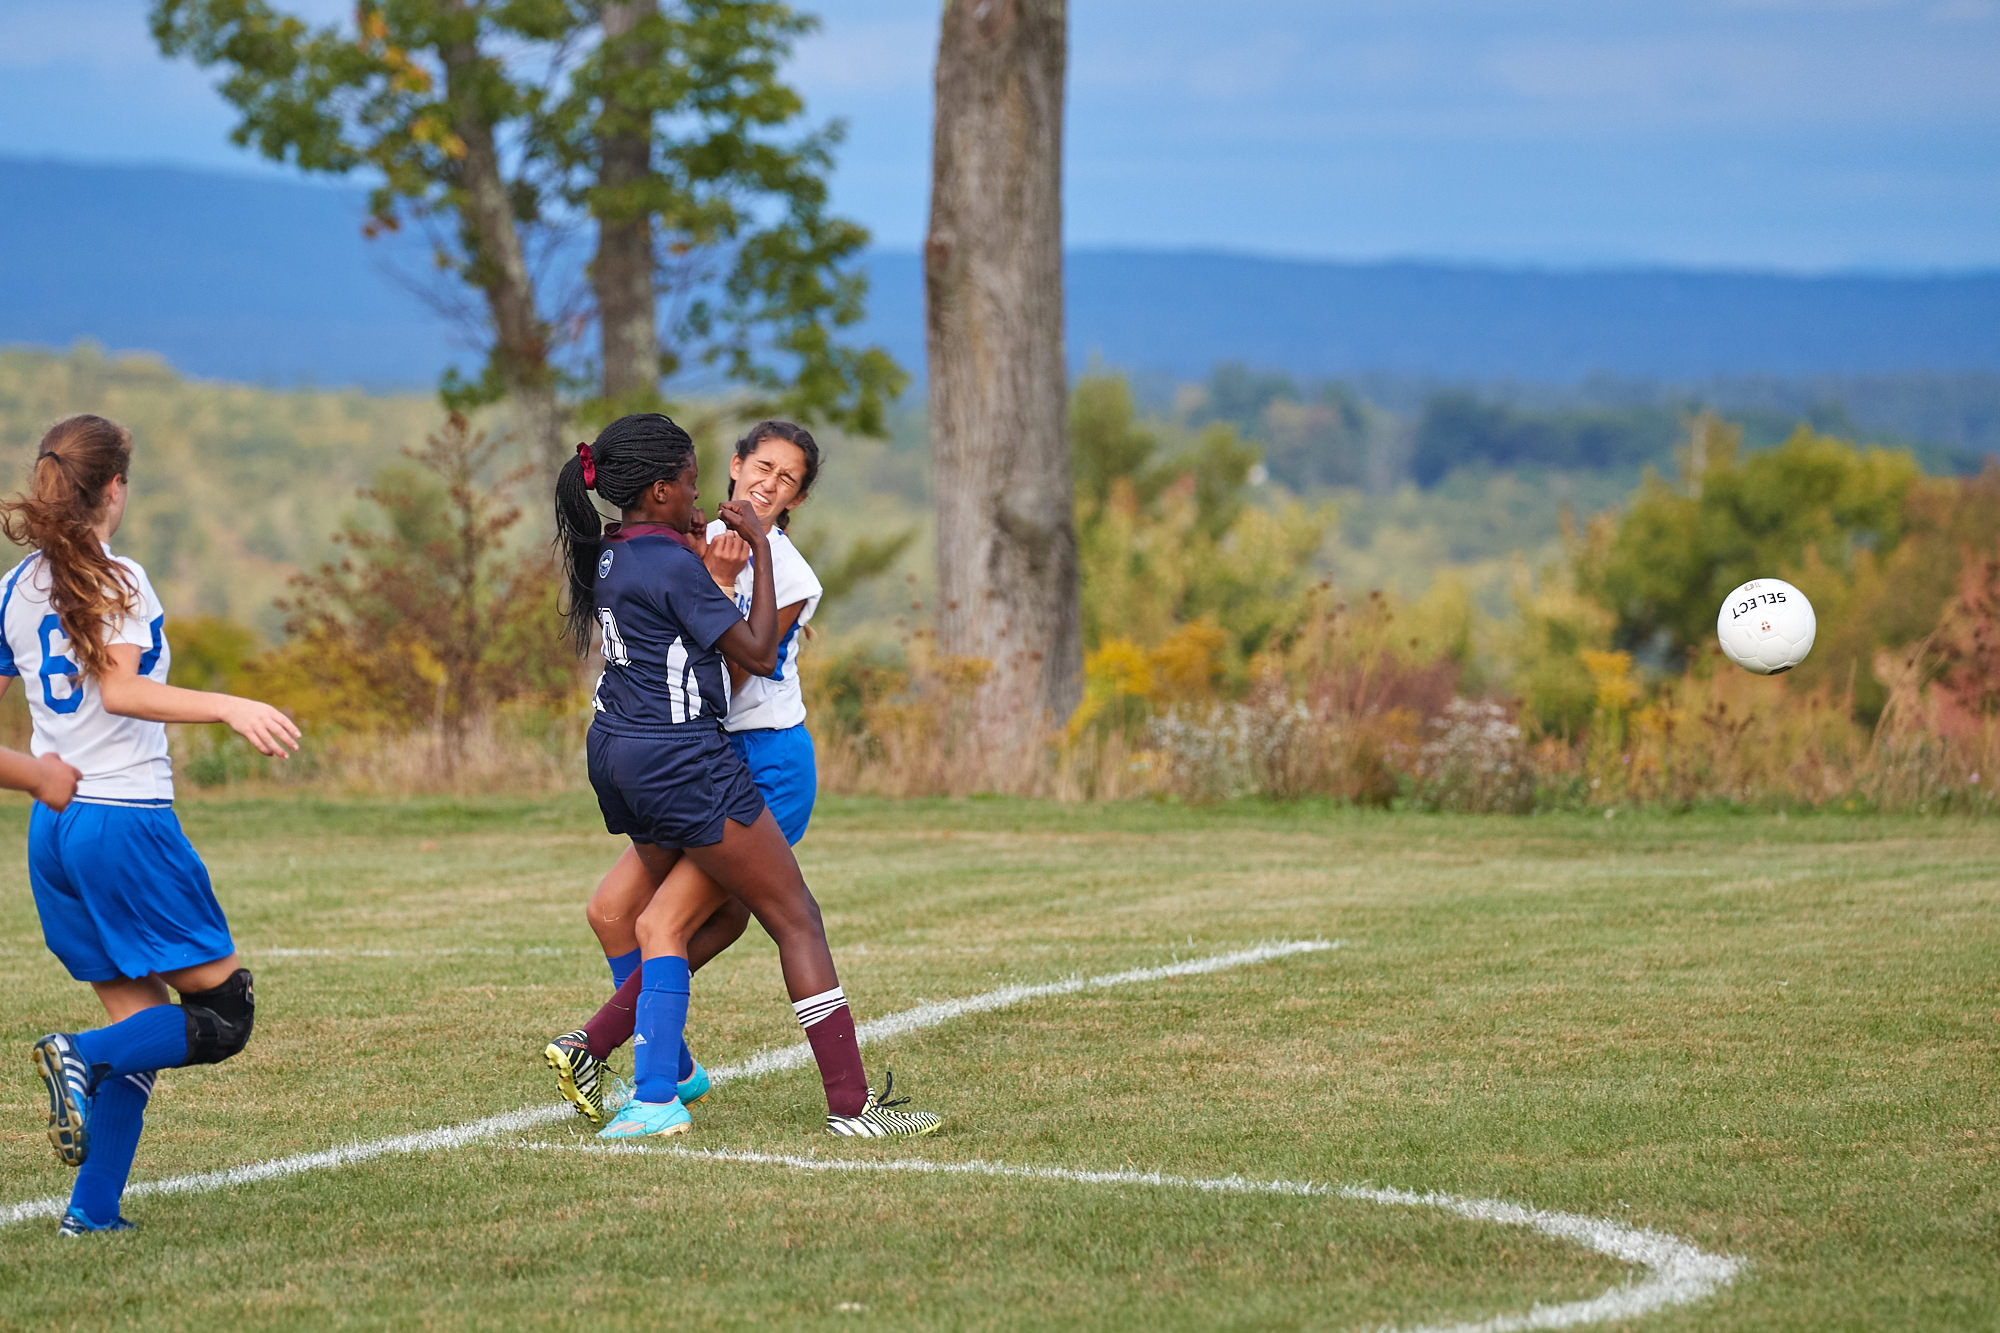 Girls Varsity Soccer vs. Four Rivers Charter Public School - September 23, 2016 - 41910- 000163.jpg